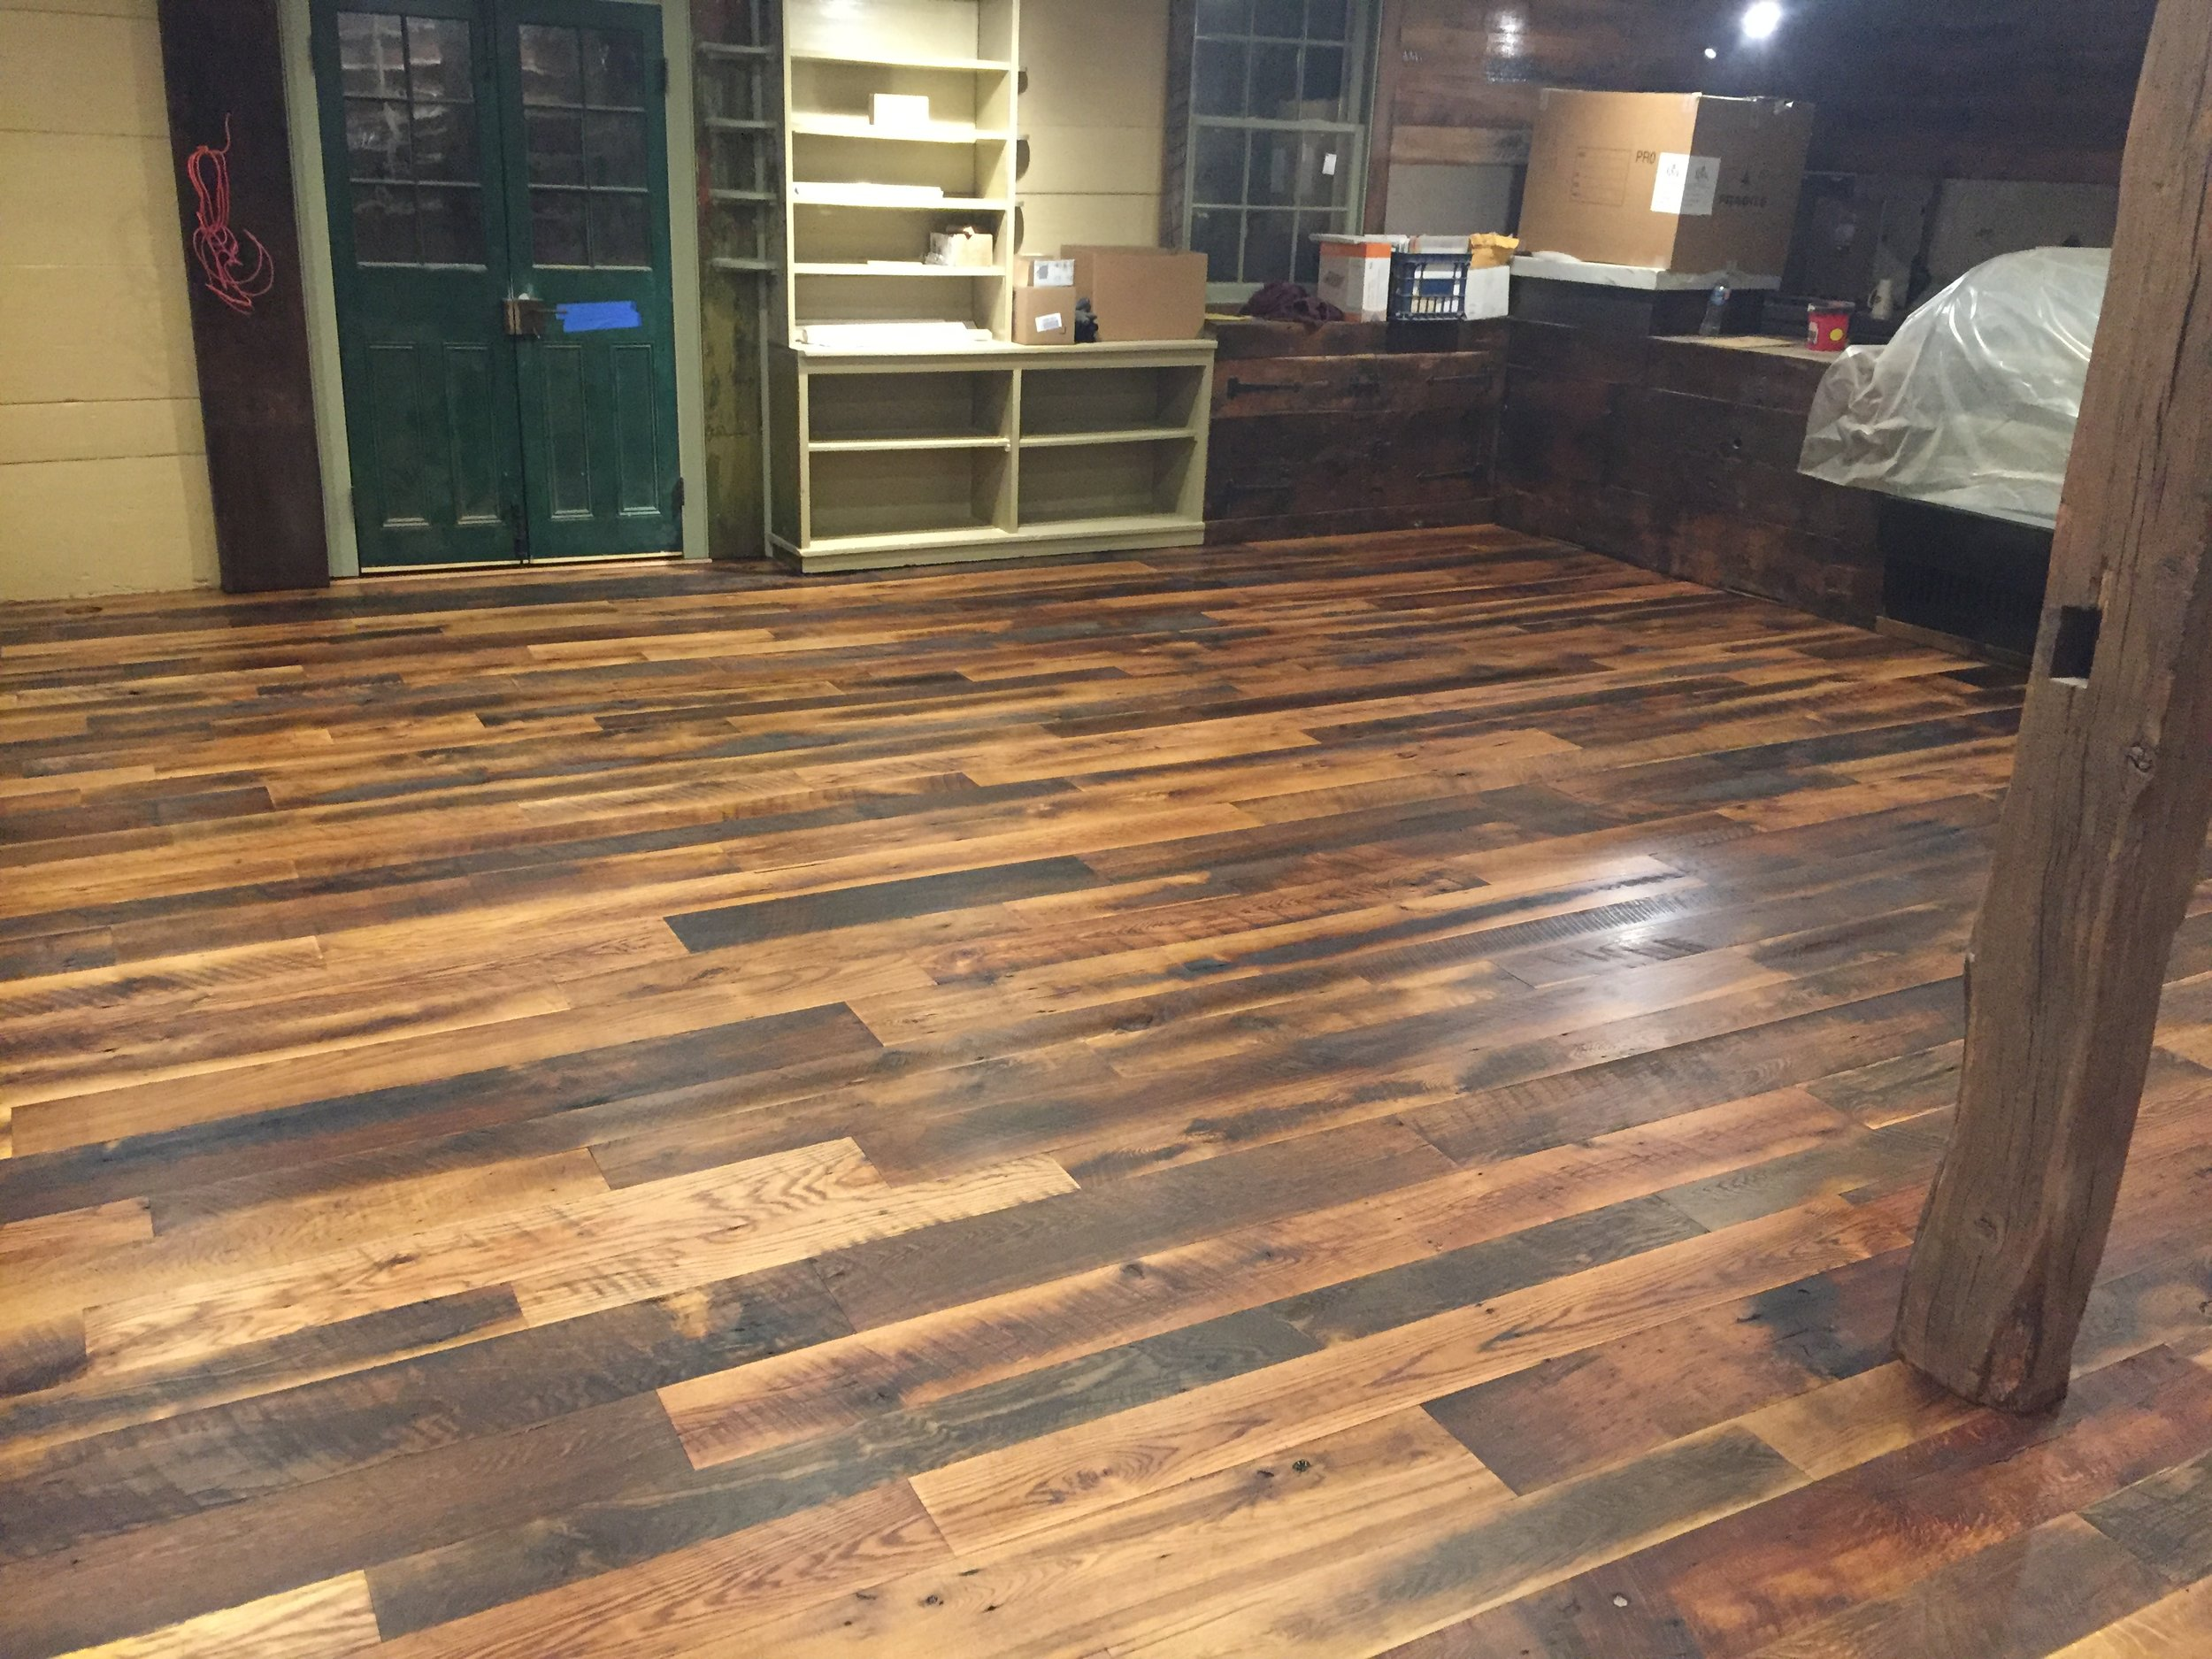 terri feralio - custom wood floor after stain.JPG